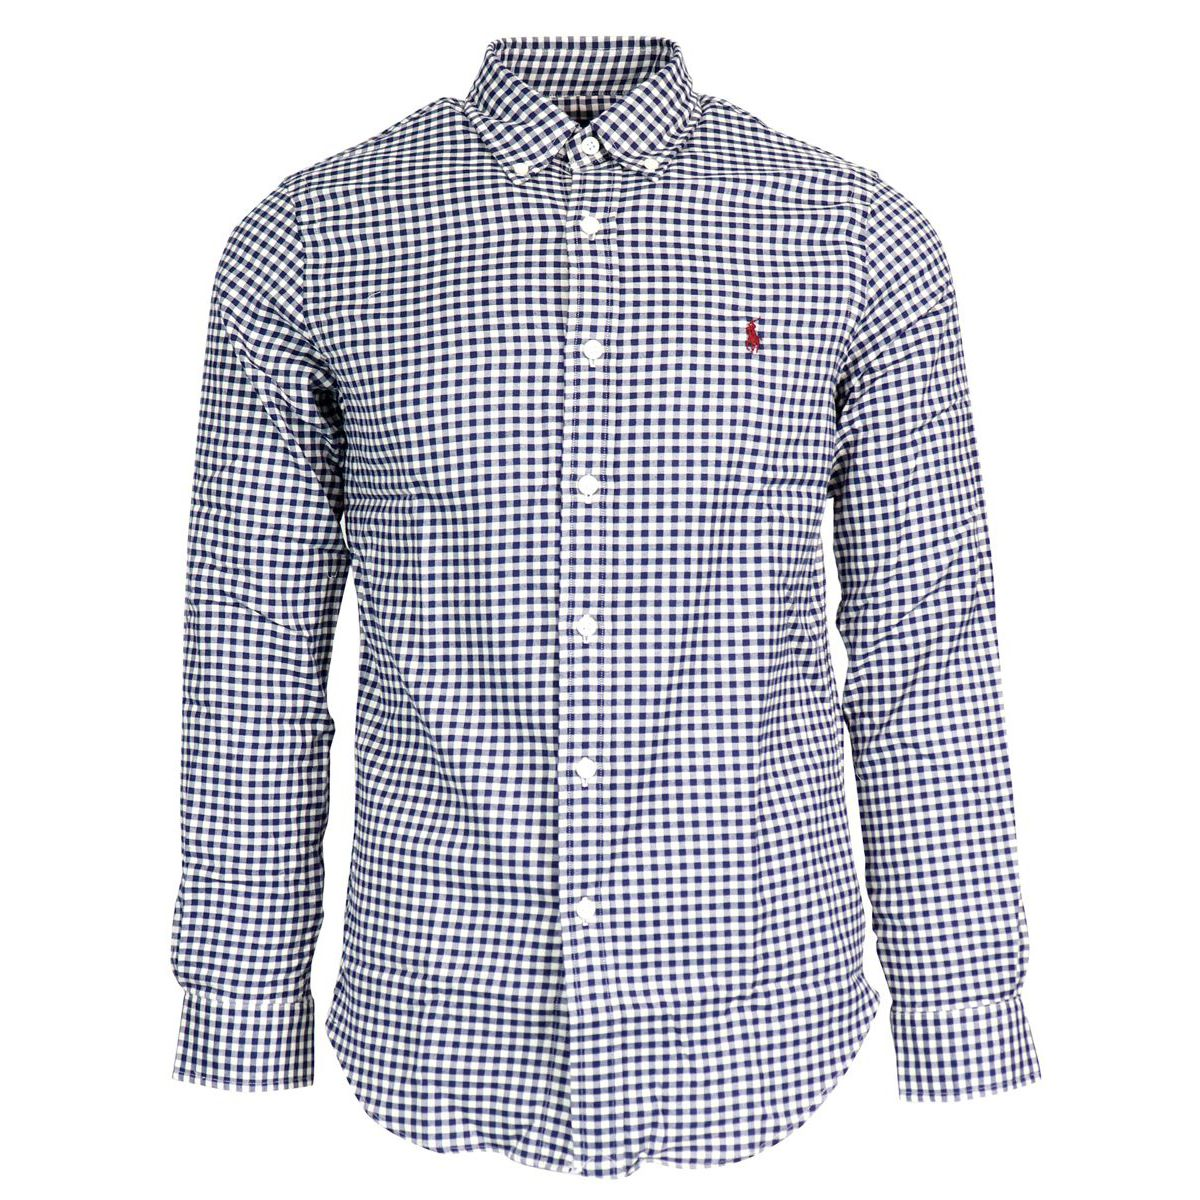 Slim botton down cotton shirt with micro square pattern Heavenly Polo Ralph Lauren